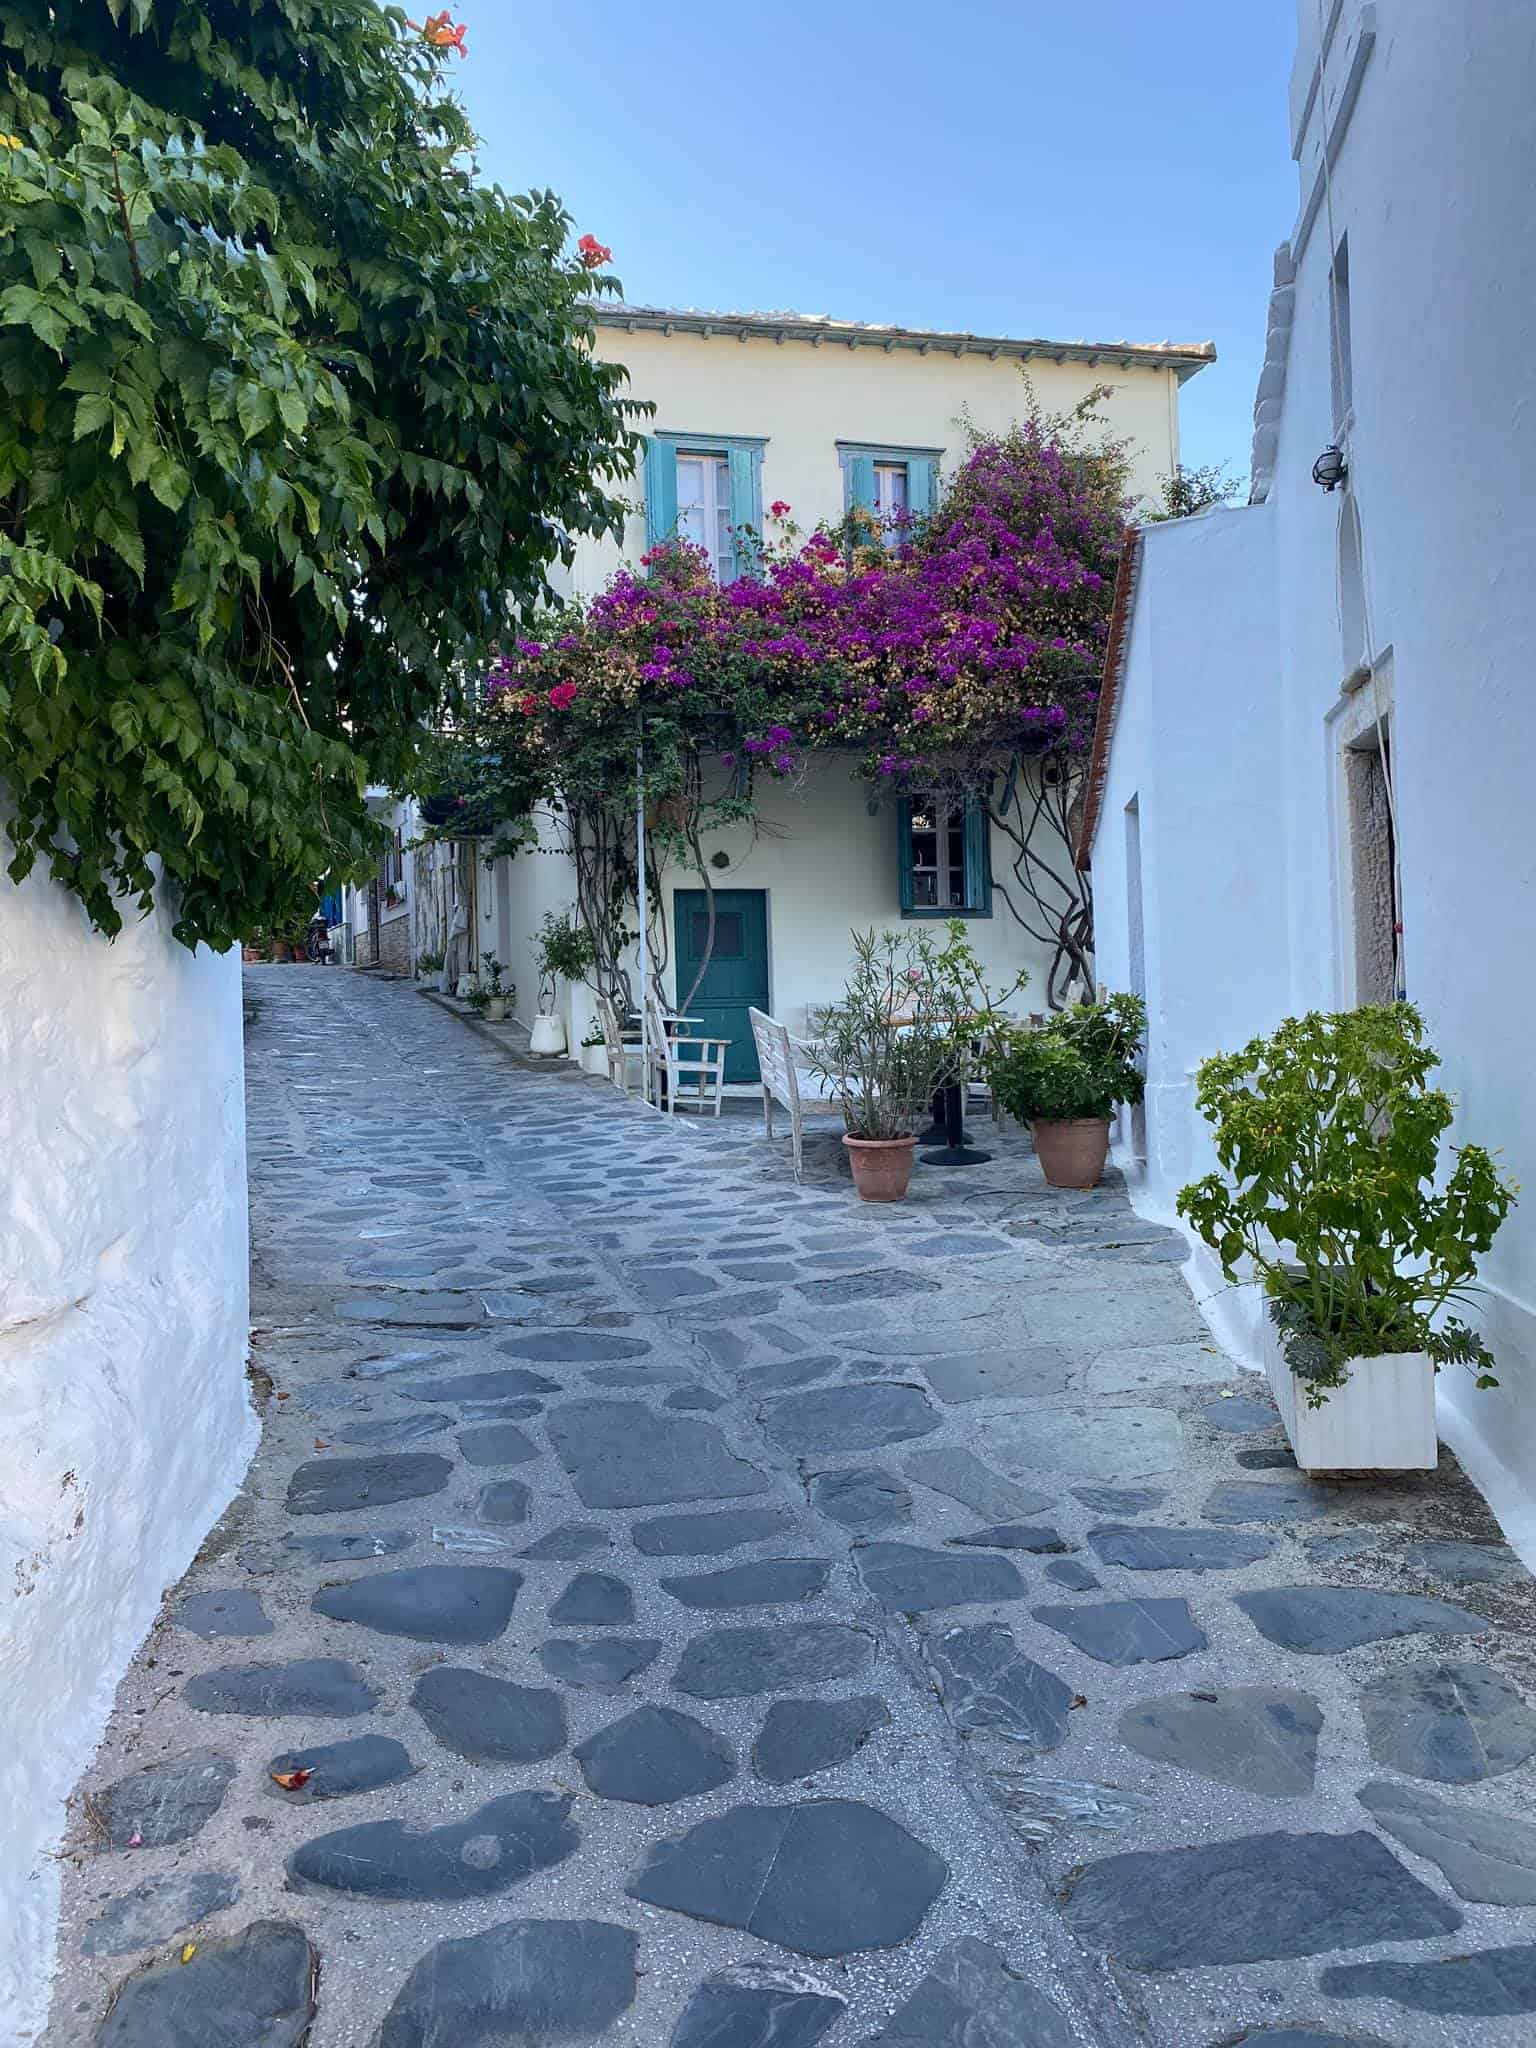 Meander through the narrow streets of Skopelos town